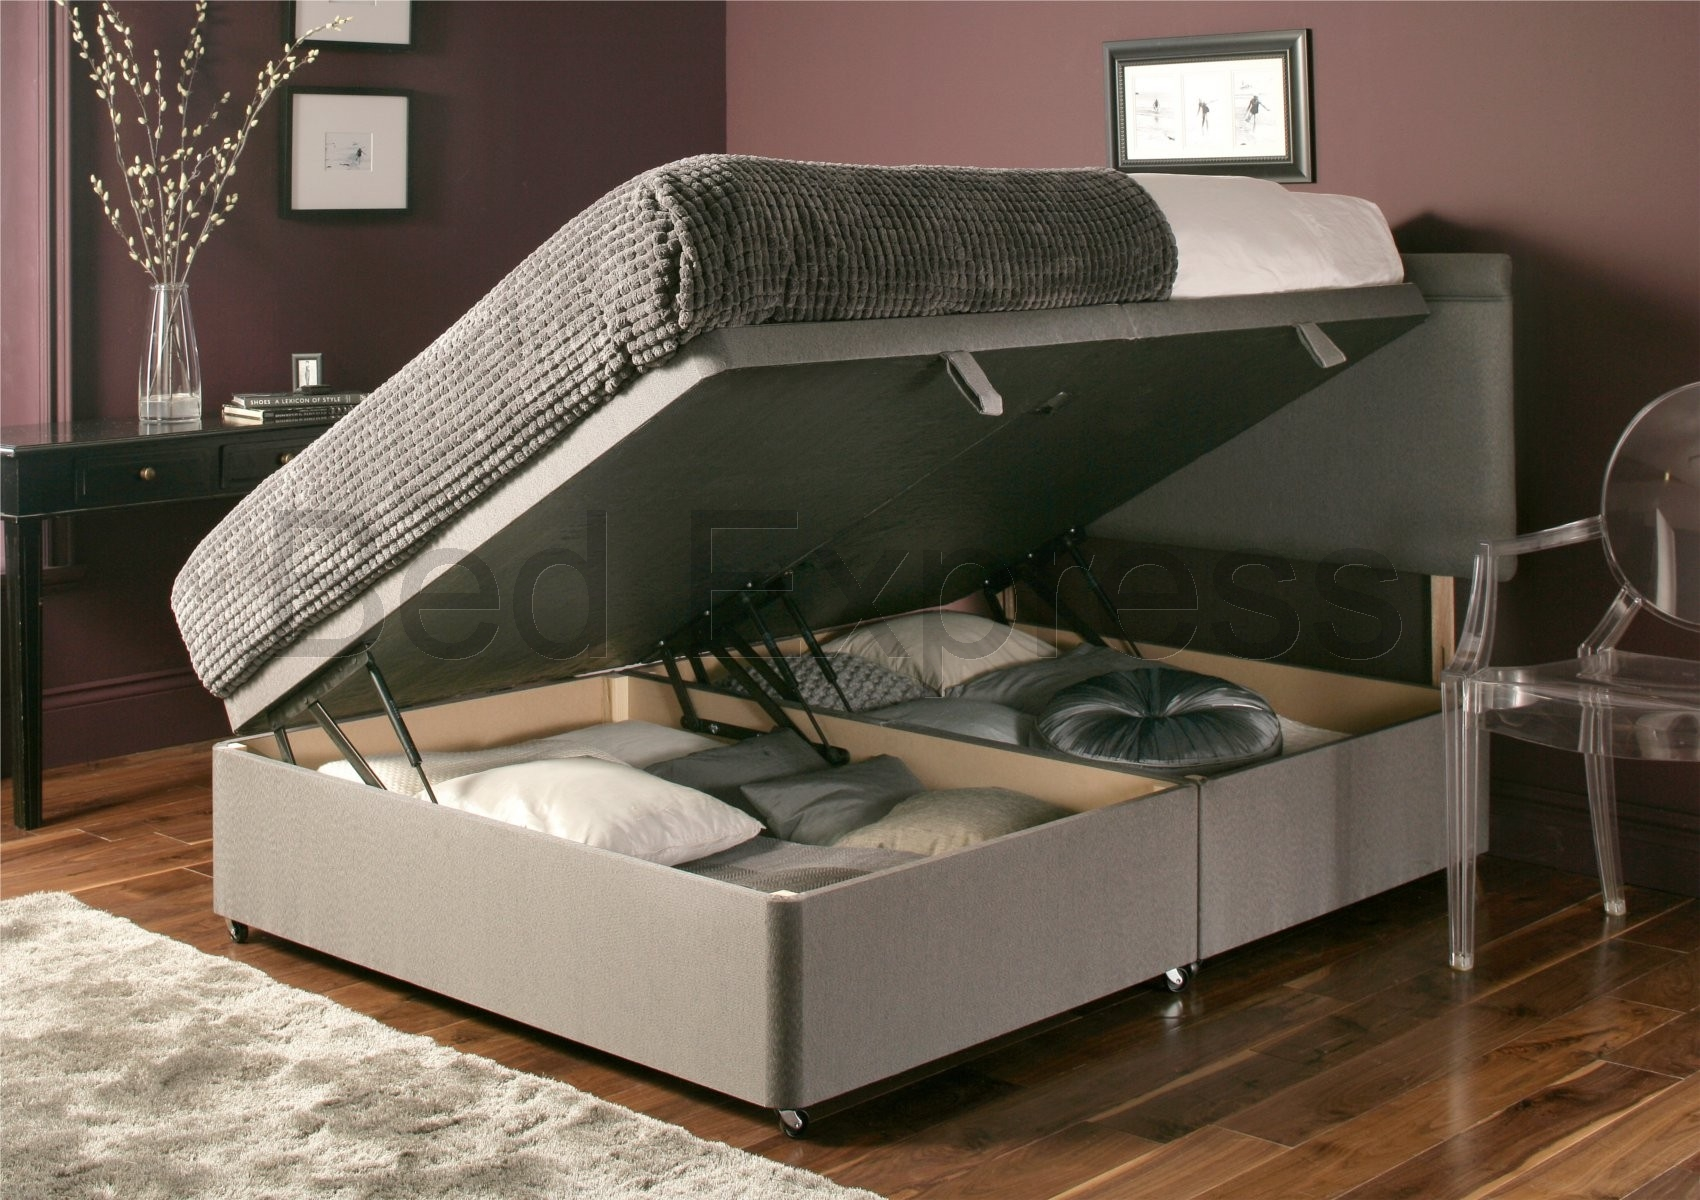 Luxury chenille ottoman divan storage bed single double for Cool beds for small bedrooms